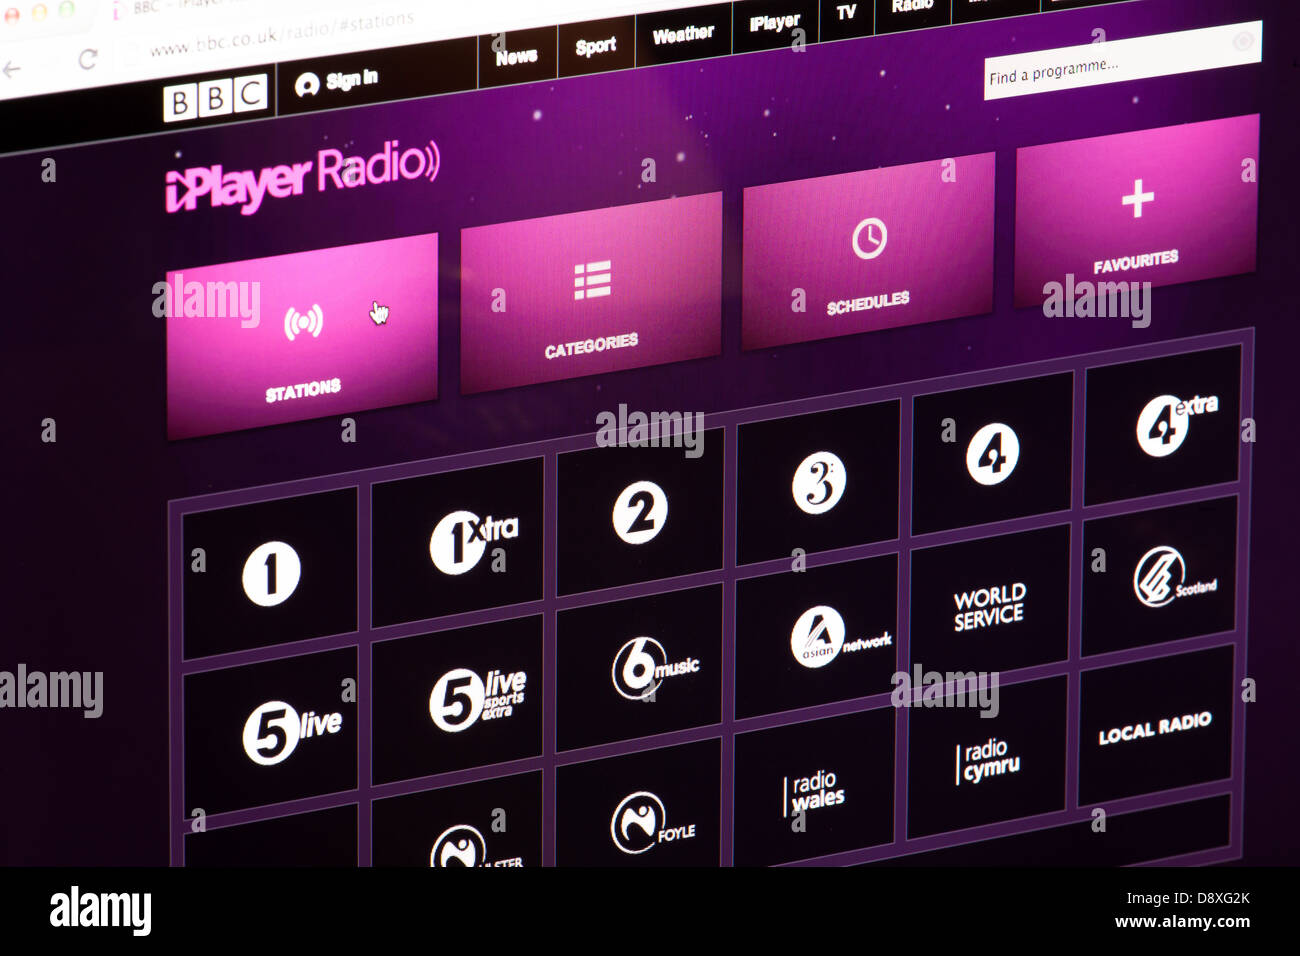 BBC iPlayer Radio Channels Website or web page on a laptop screen or computer monitor - Stock Image